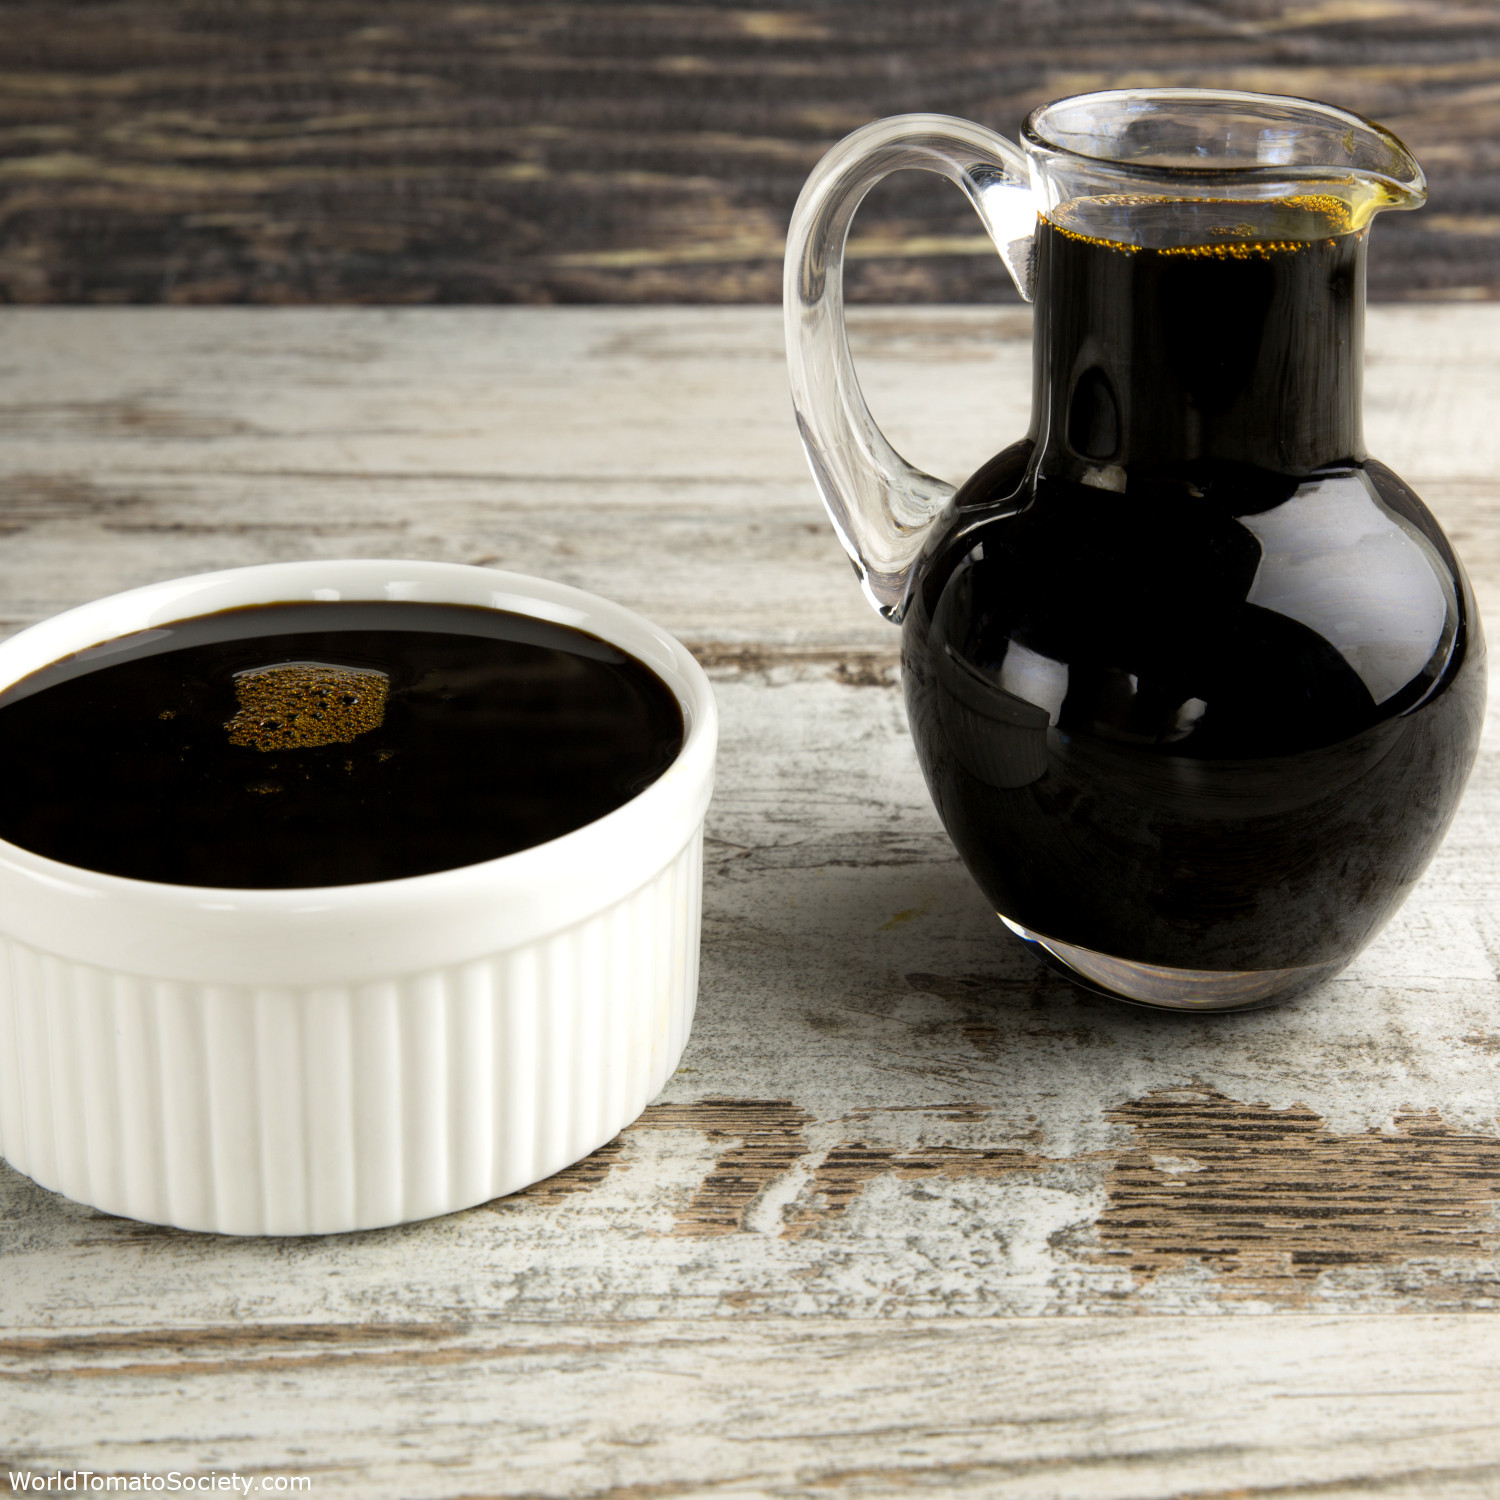 ARTICLE Milk and Molasses Miracles for Your Garden Part Edit